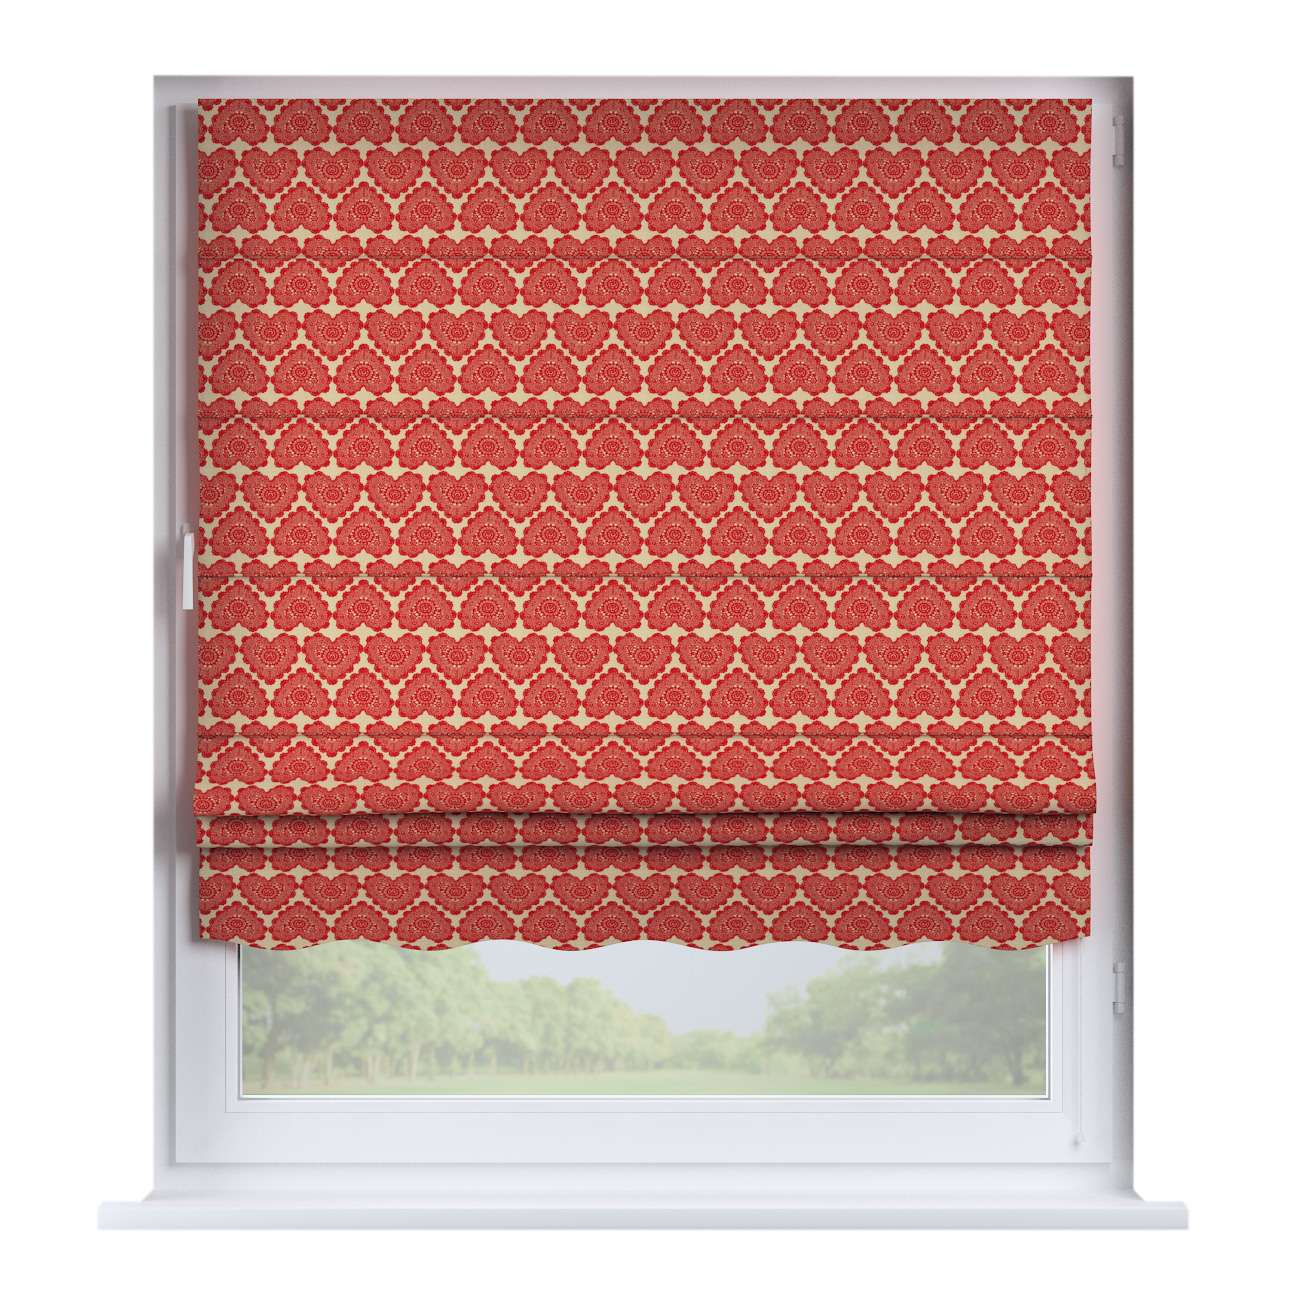 Florence roman blind  80 x 170 cm (31.5 x 67 inch) in collection Christmas, fabric: 629-17